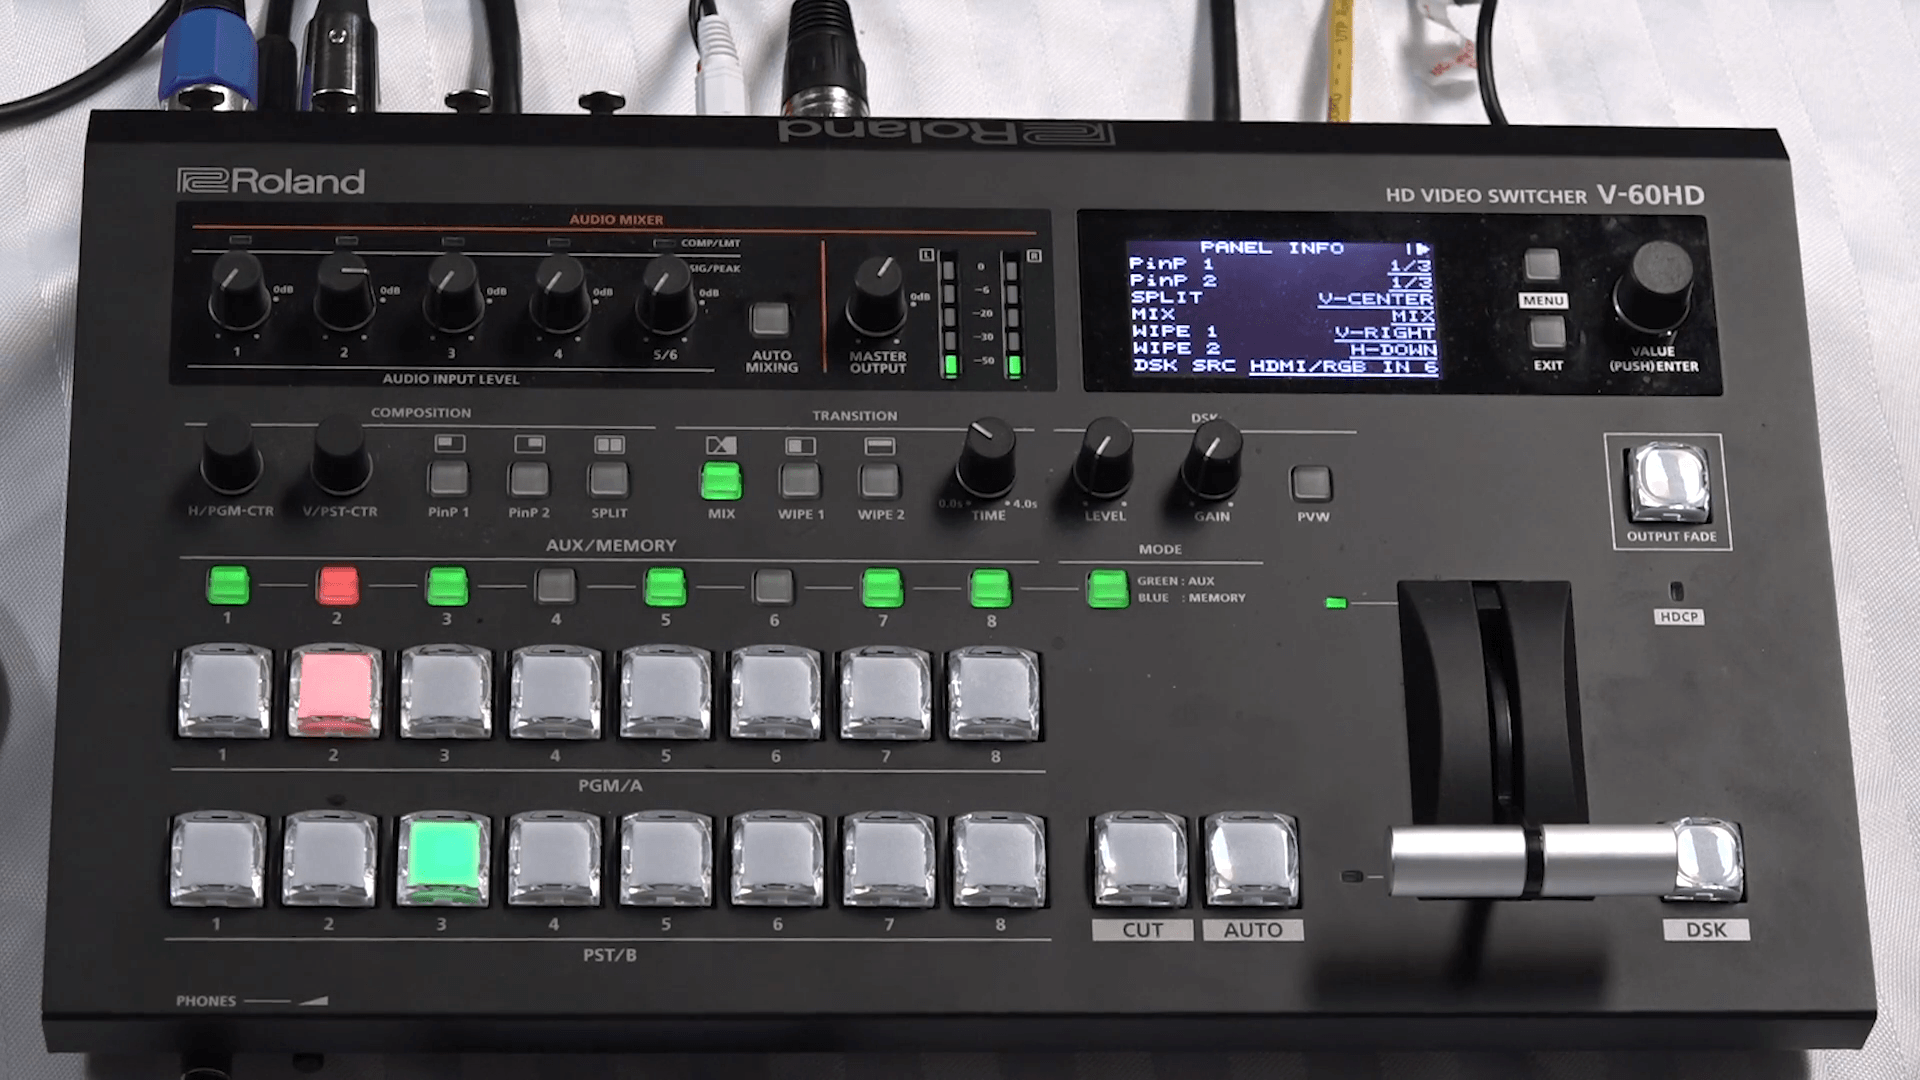 Tutorial: Live Event Streaming with the Roland V-60HD, Part 2—Smart